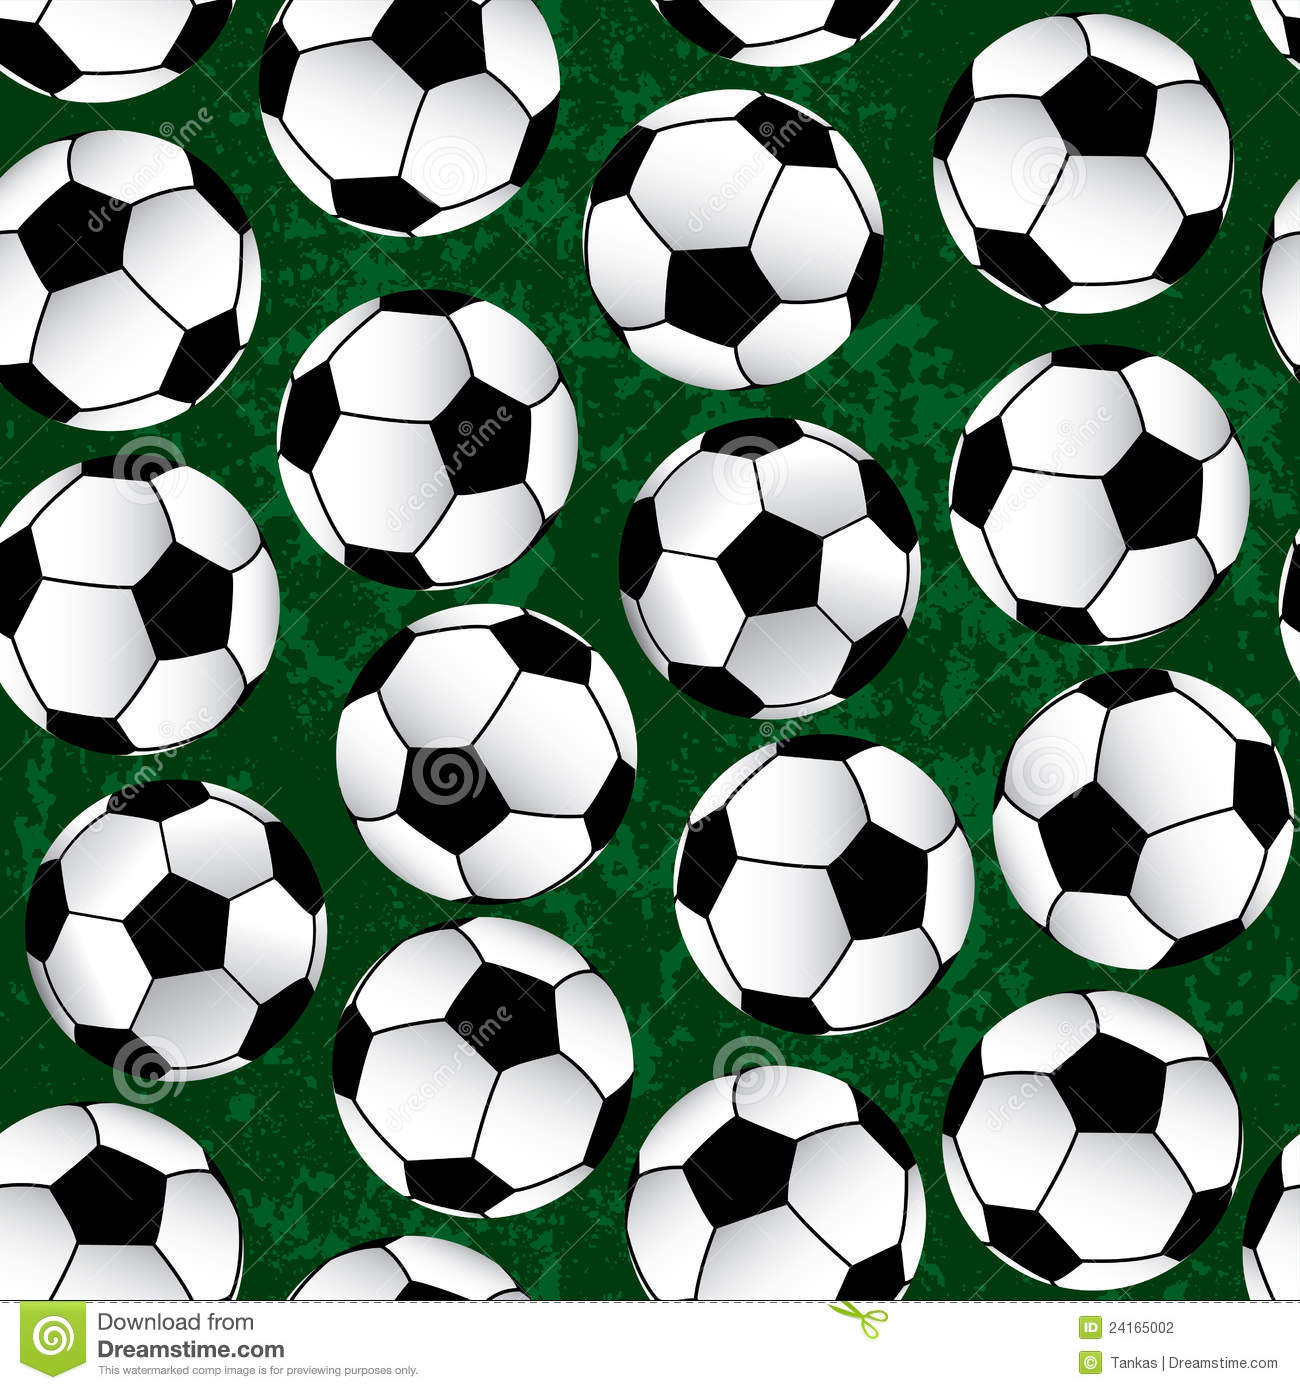 Soccer Pattern Stock Photography - Image: 24165002